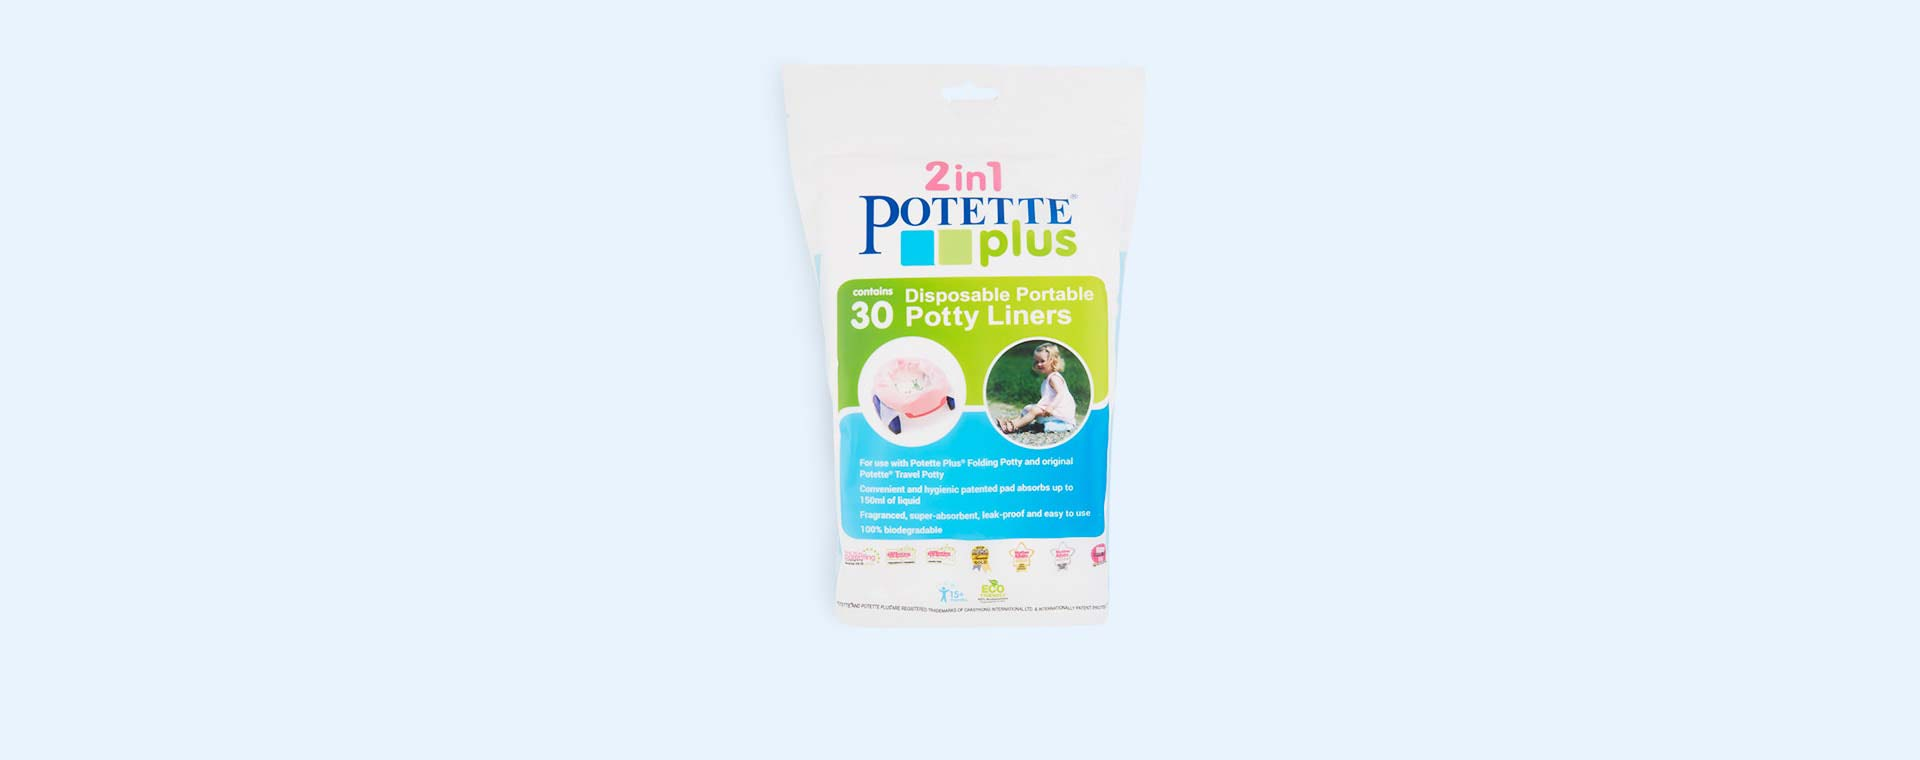 White Potette Disposable Potty Liners